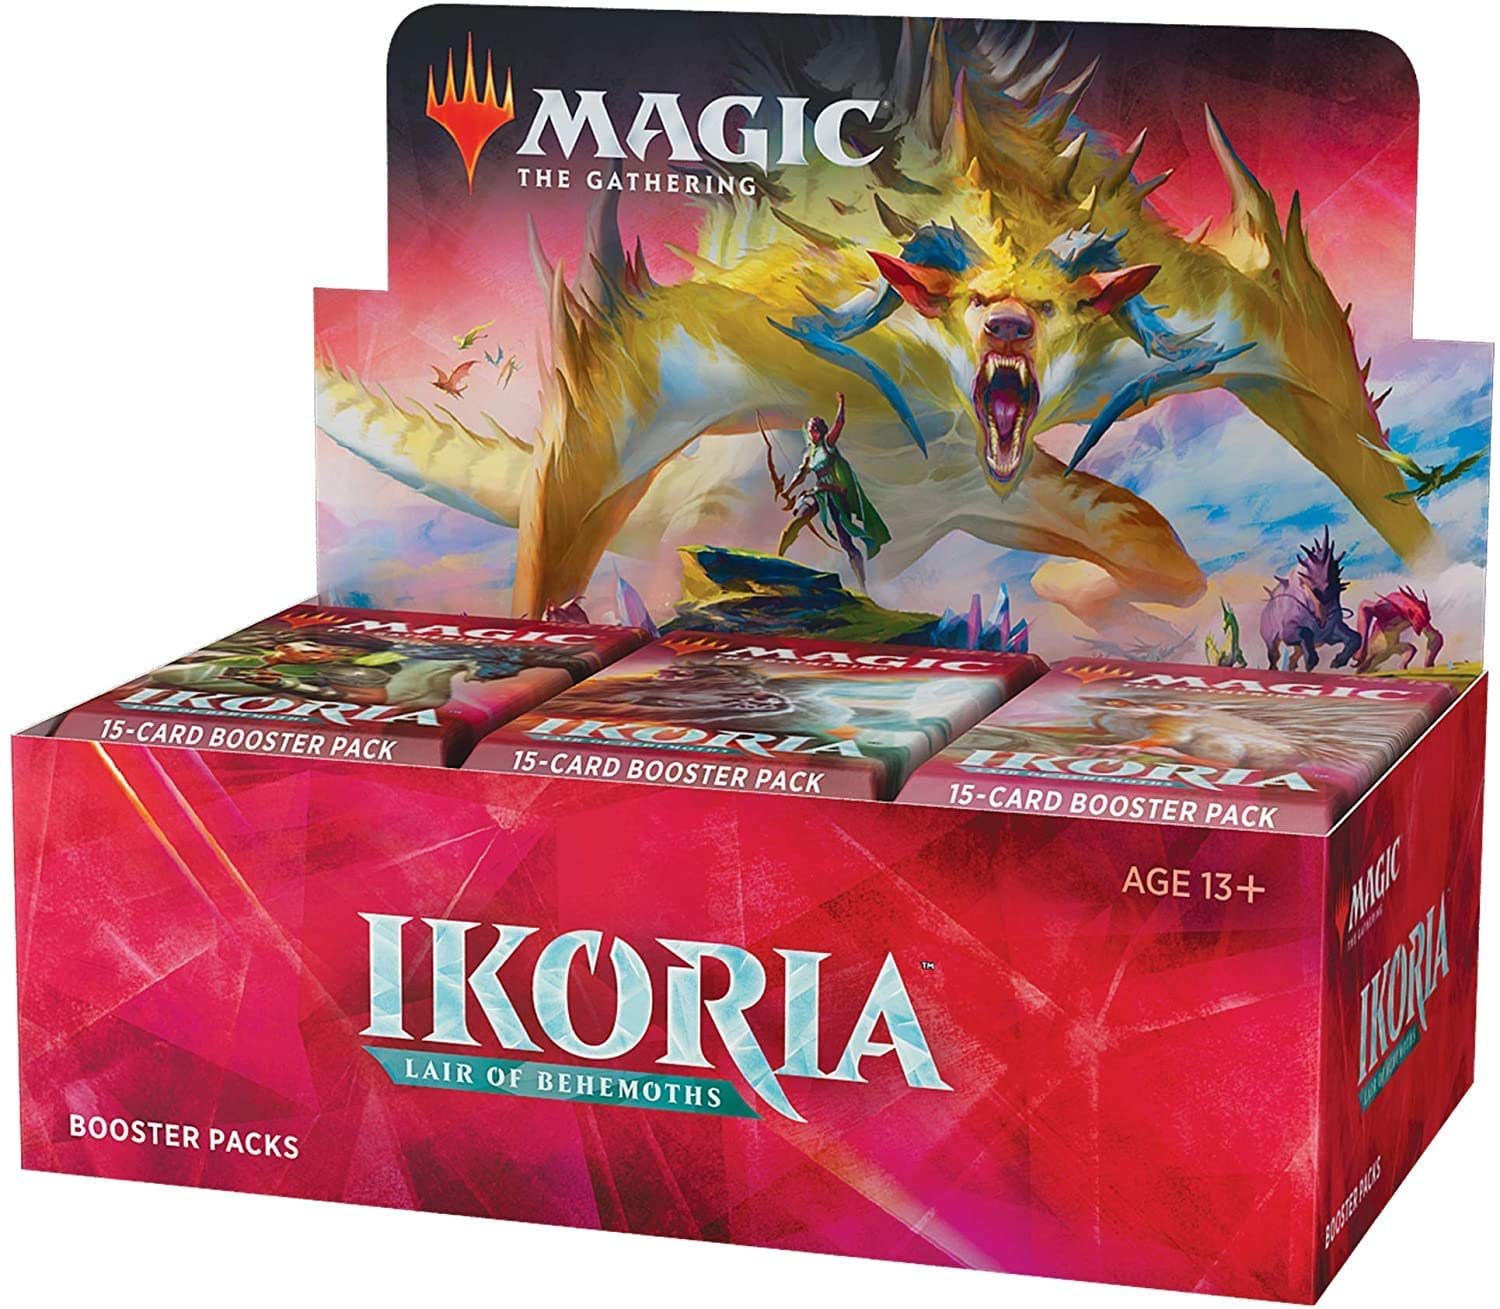 MTG Booster Box - Ikoria: Lair of Behemoths | Comic Shop Crawley